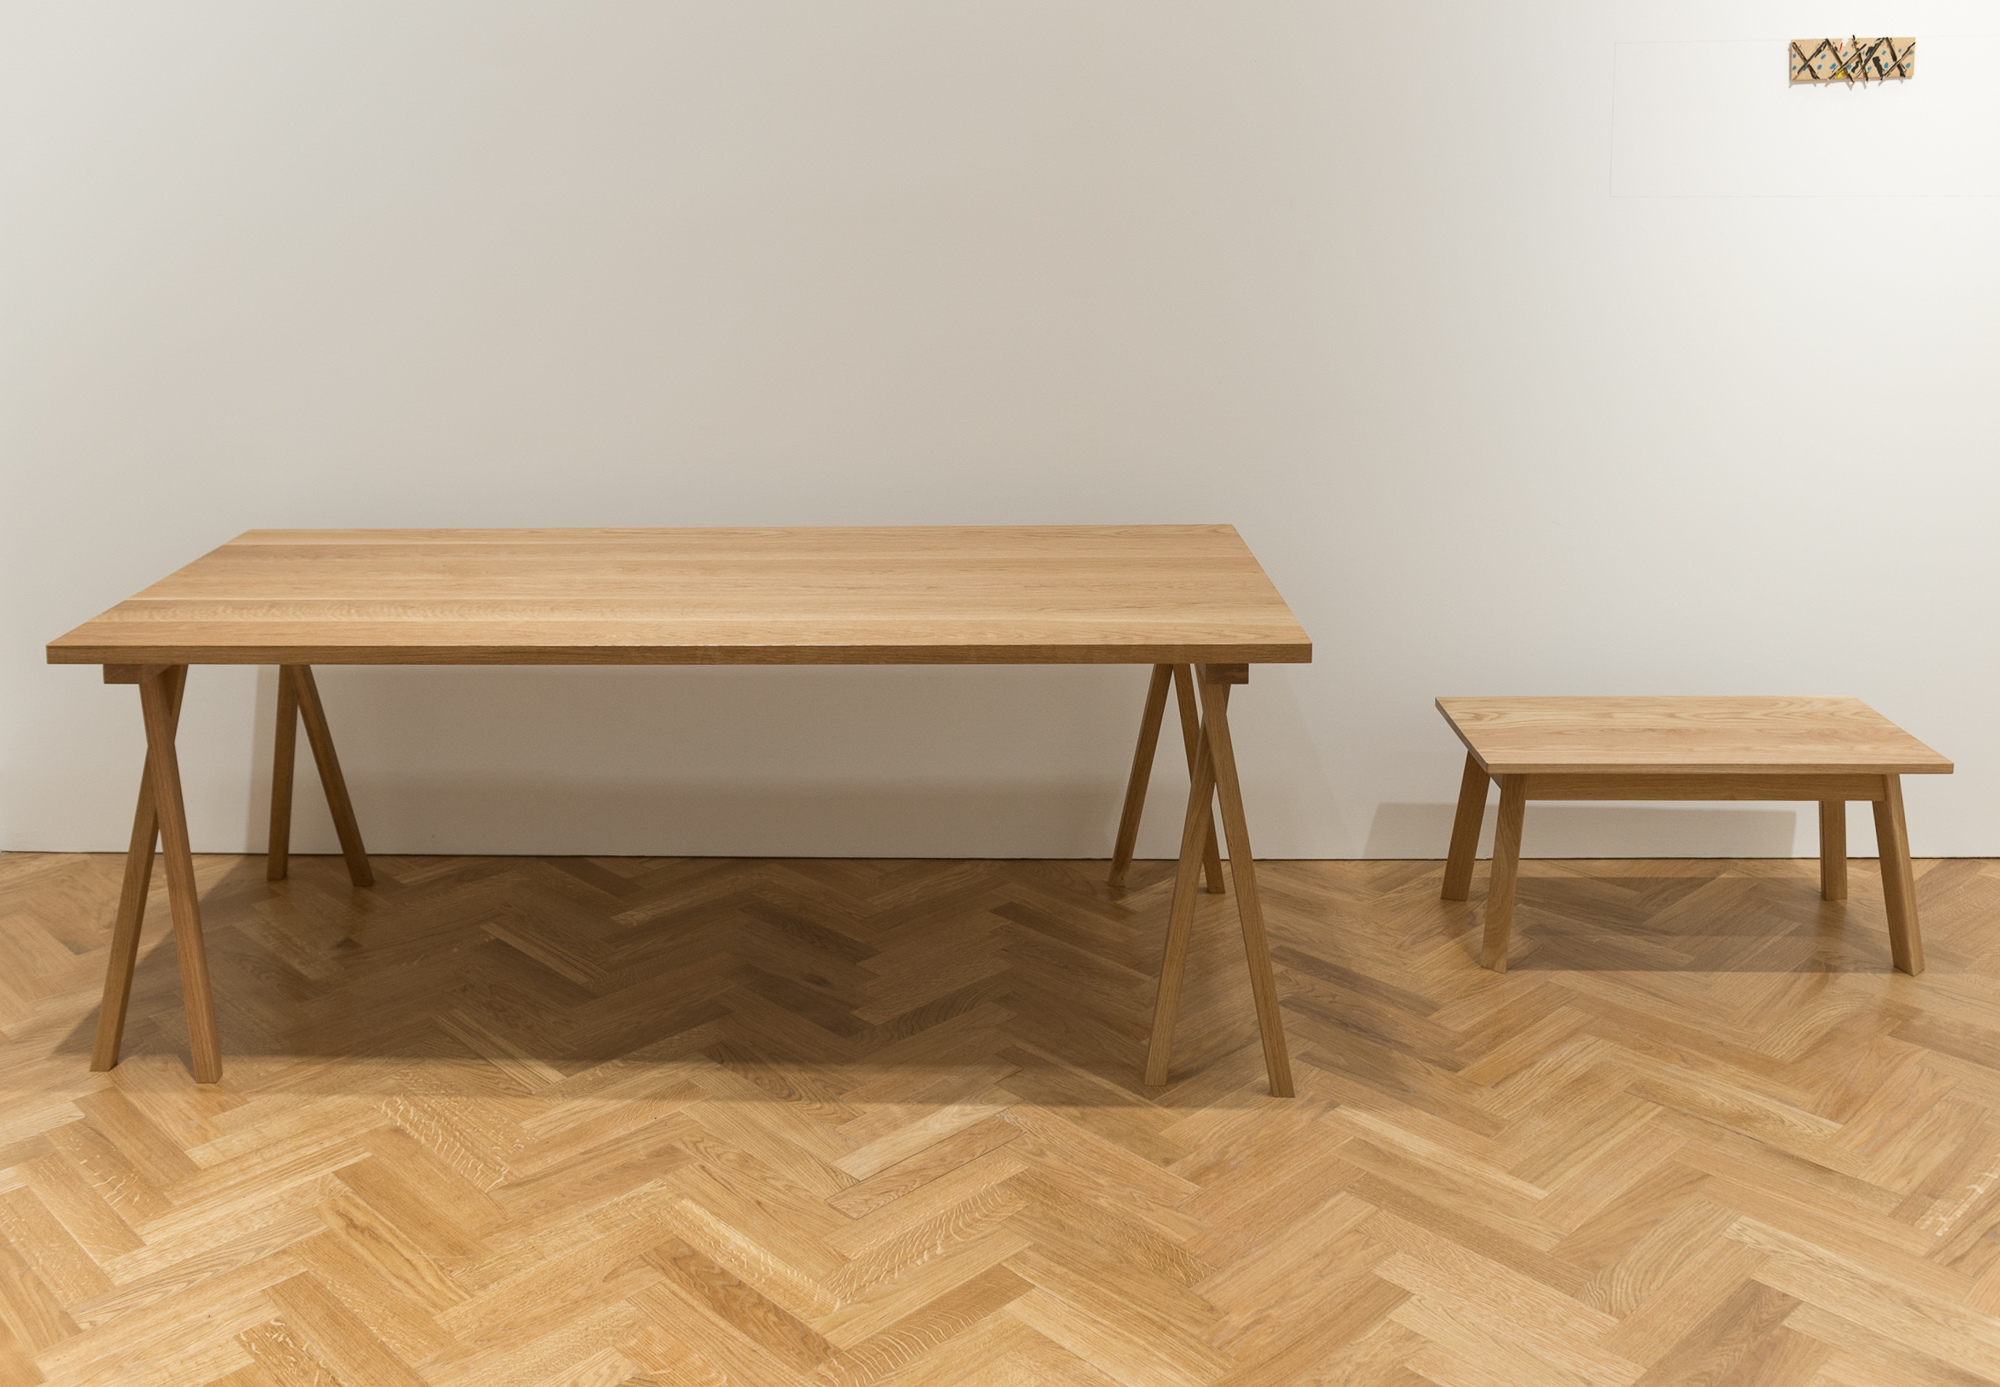 Oak coffee table and two trestles - Pace Gallery  April 2017  Solid oak trestle tables and triangle leg coffee table made for Pace's Mayfair gallery.